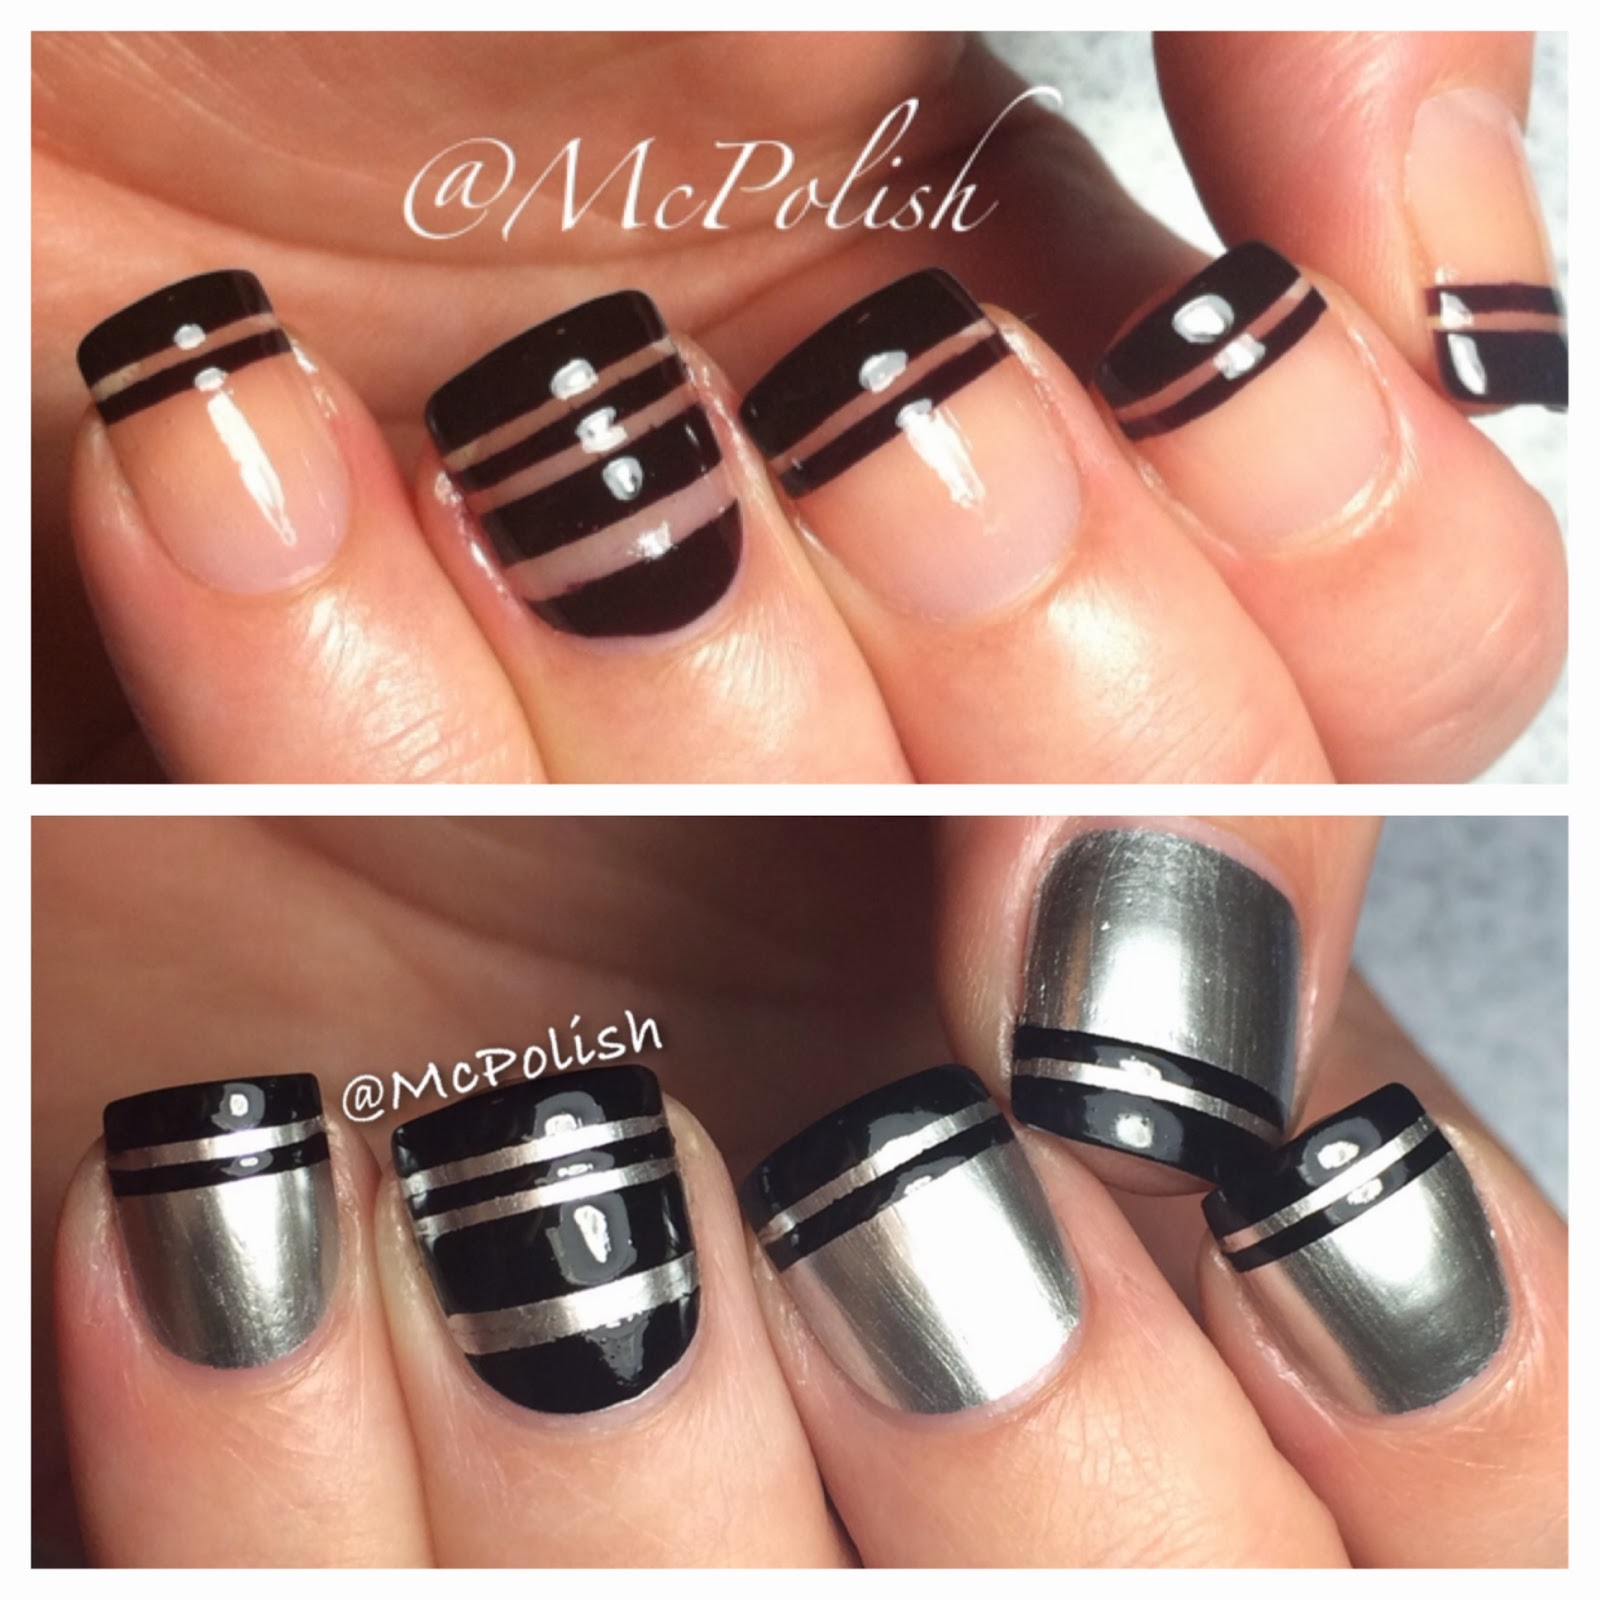 McPolish striped mani, OPI Push and Shove